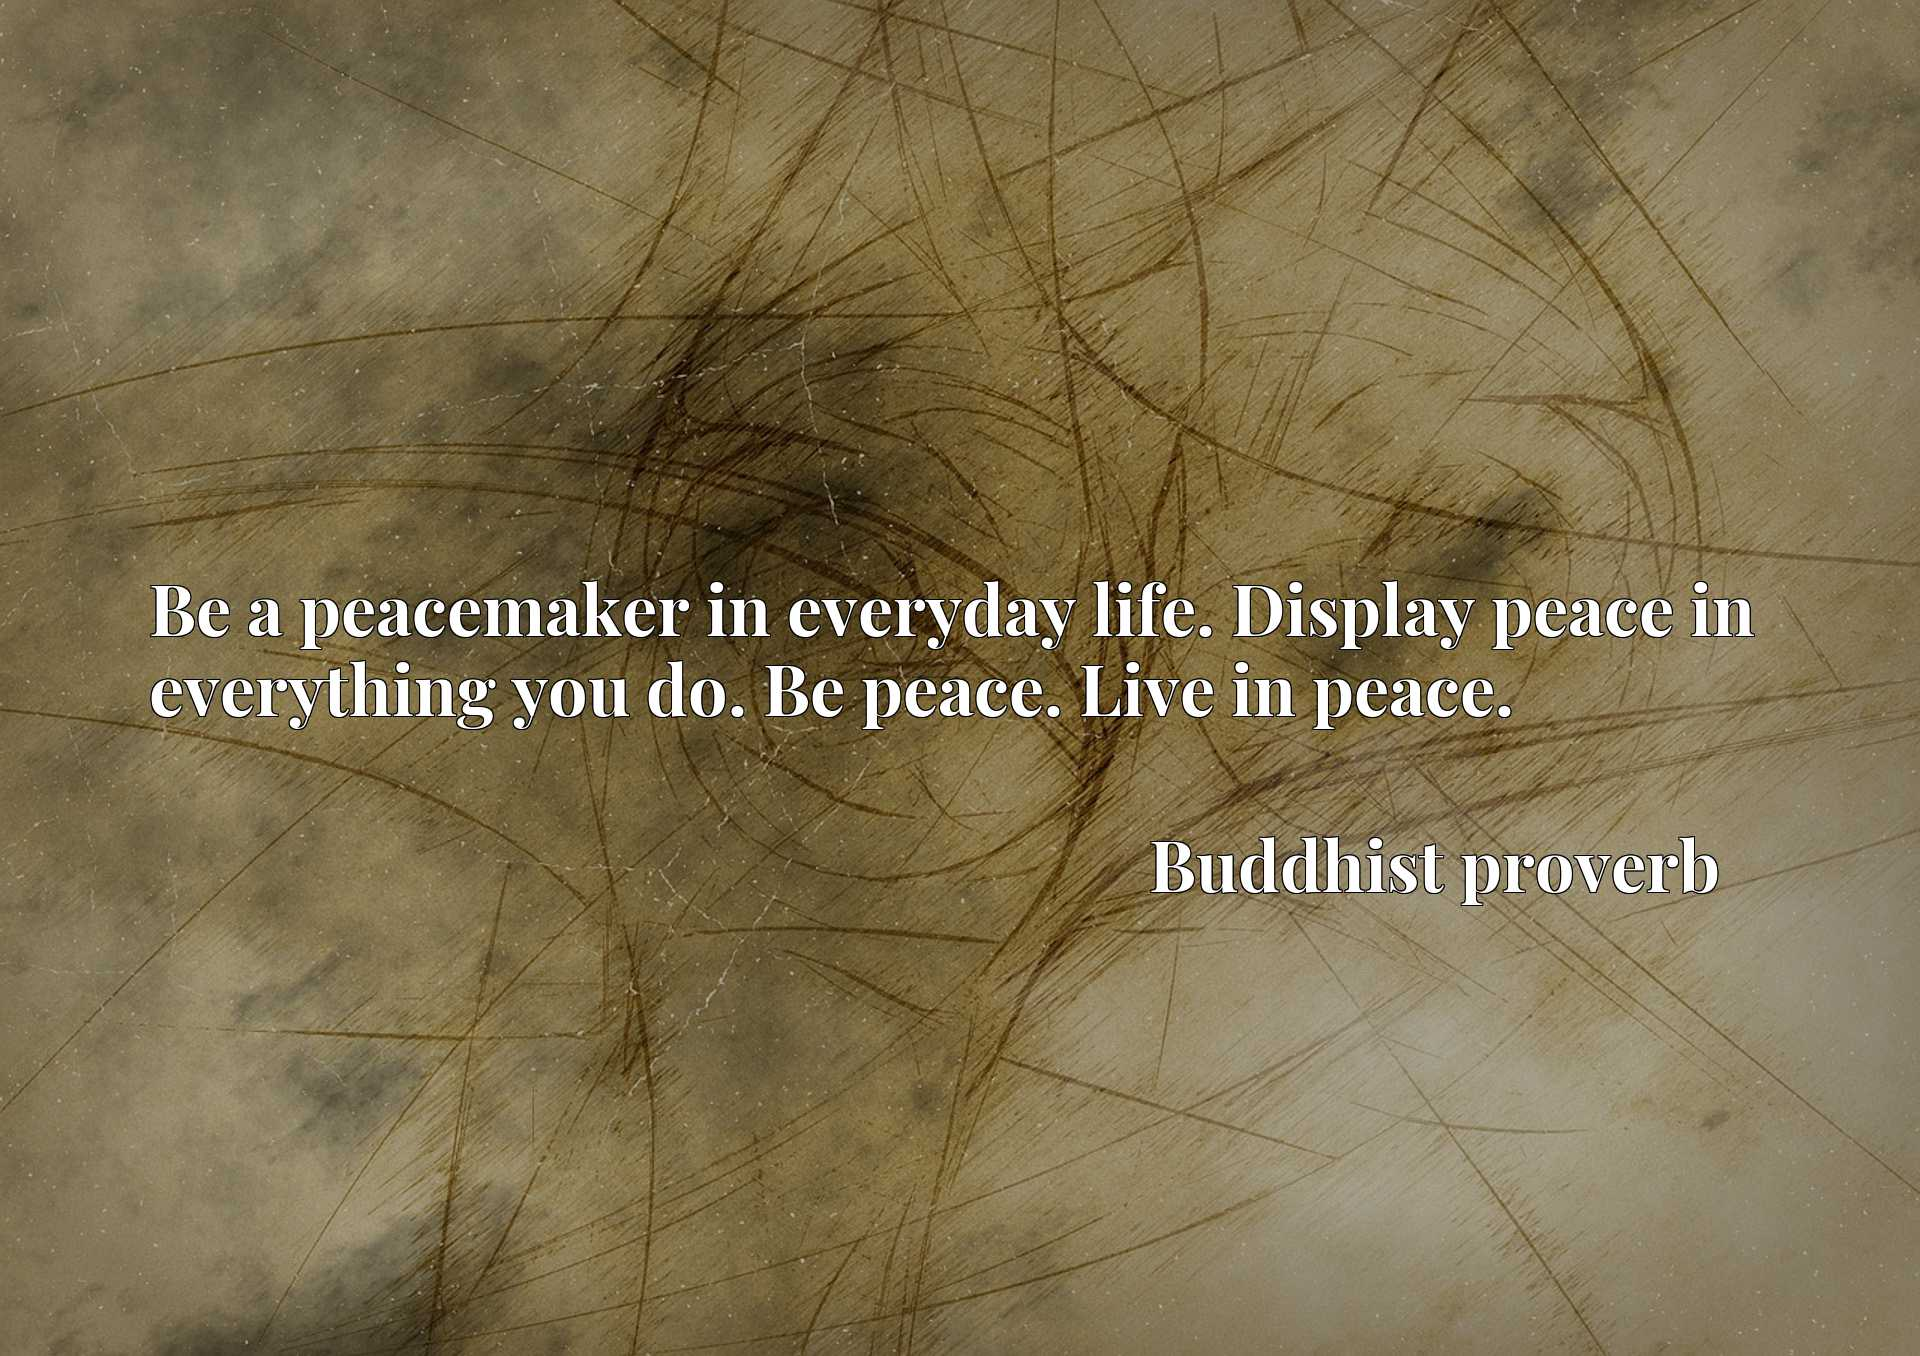 Be a peacemaker in everyday life. Display peace in everything you do. Be peace. Live in peace.